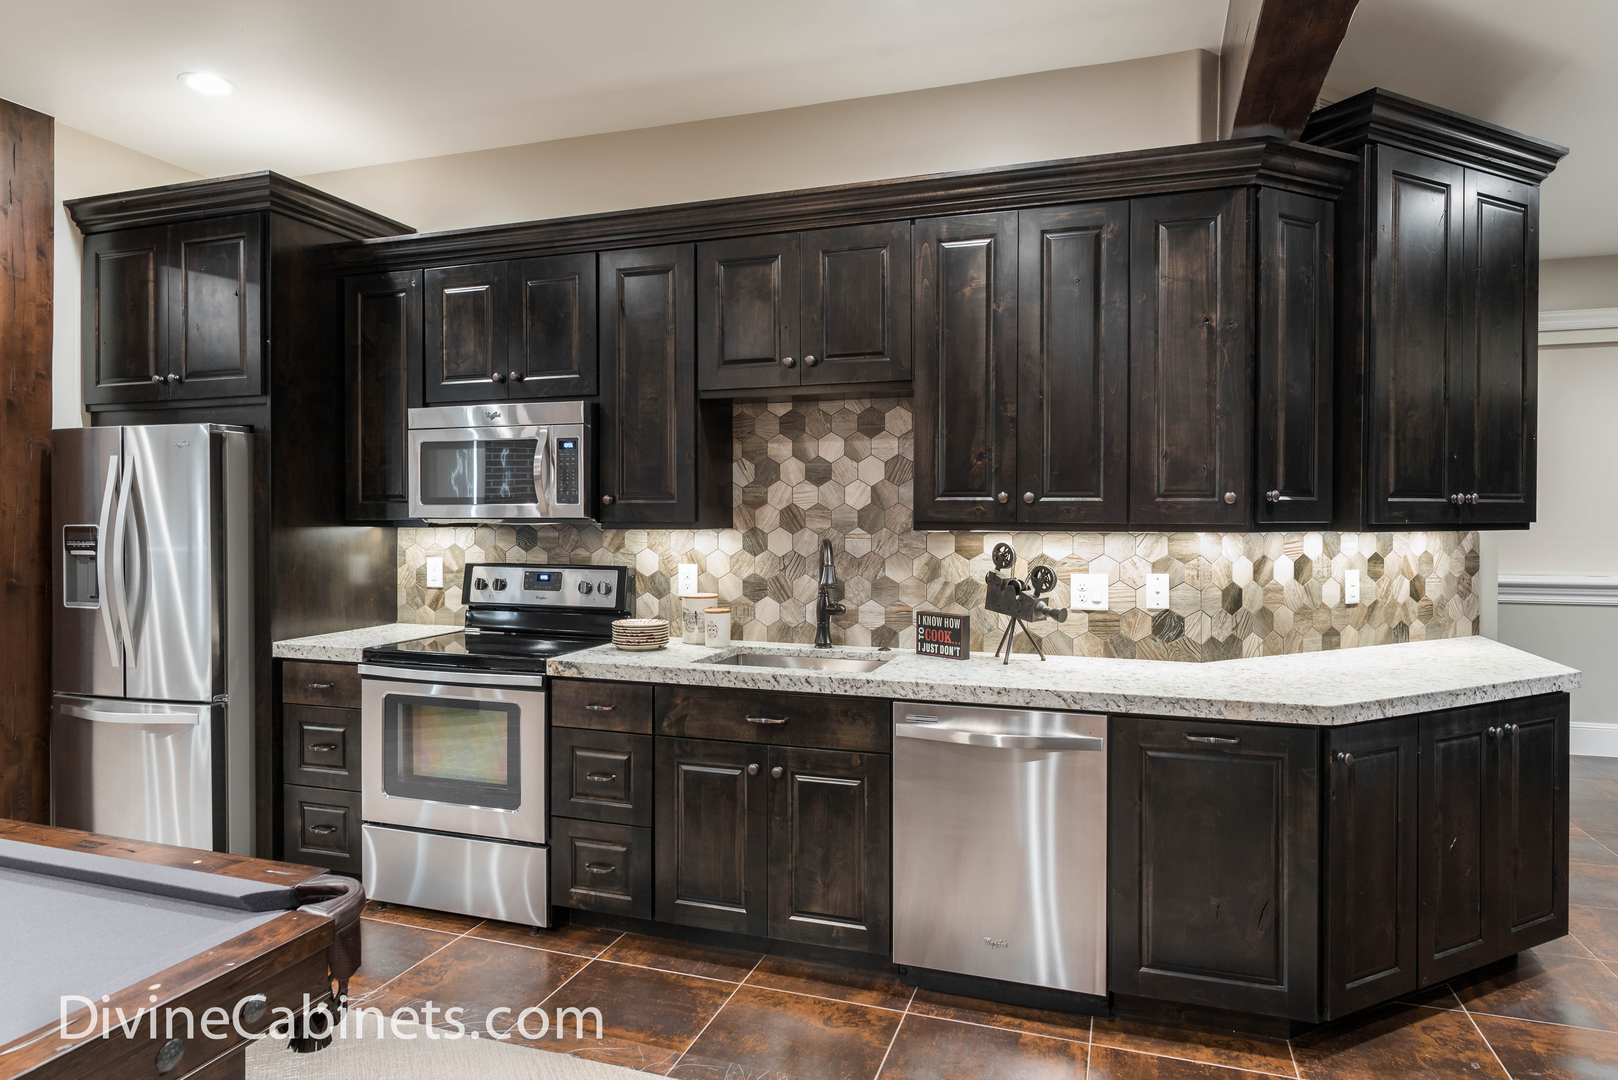 Kitchen Cabinets Utah divine cabinets - custom cabinetry, cabinet design, custom kitchen